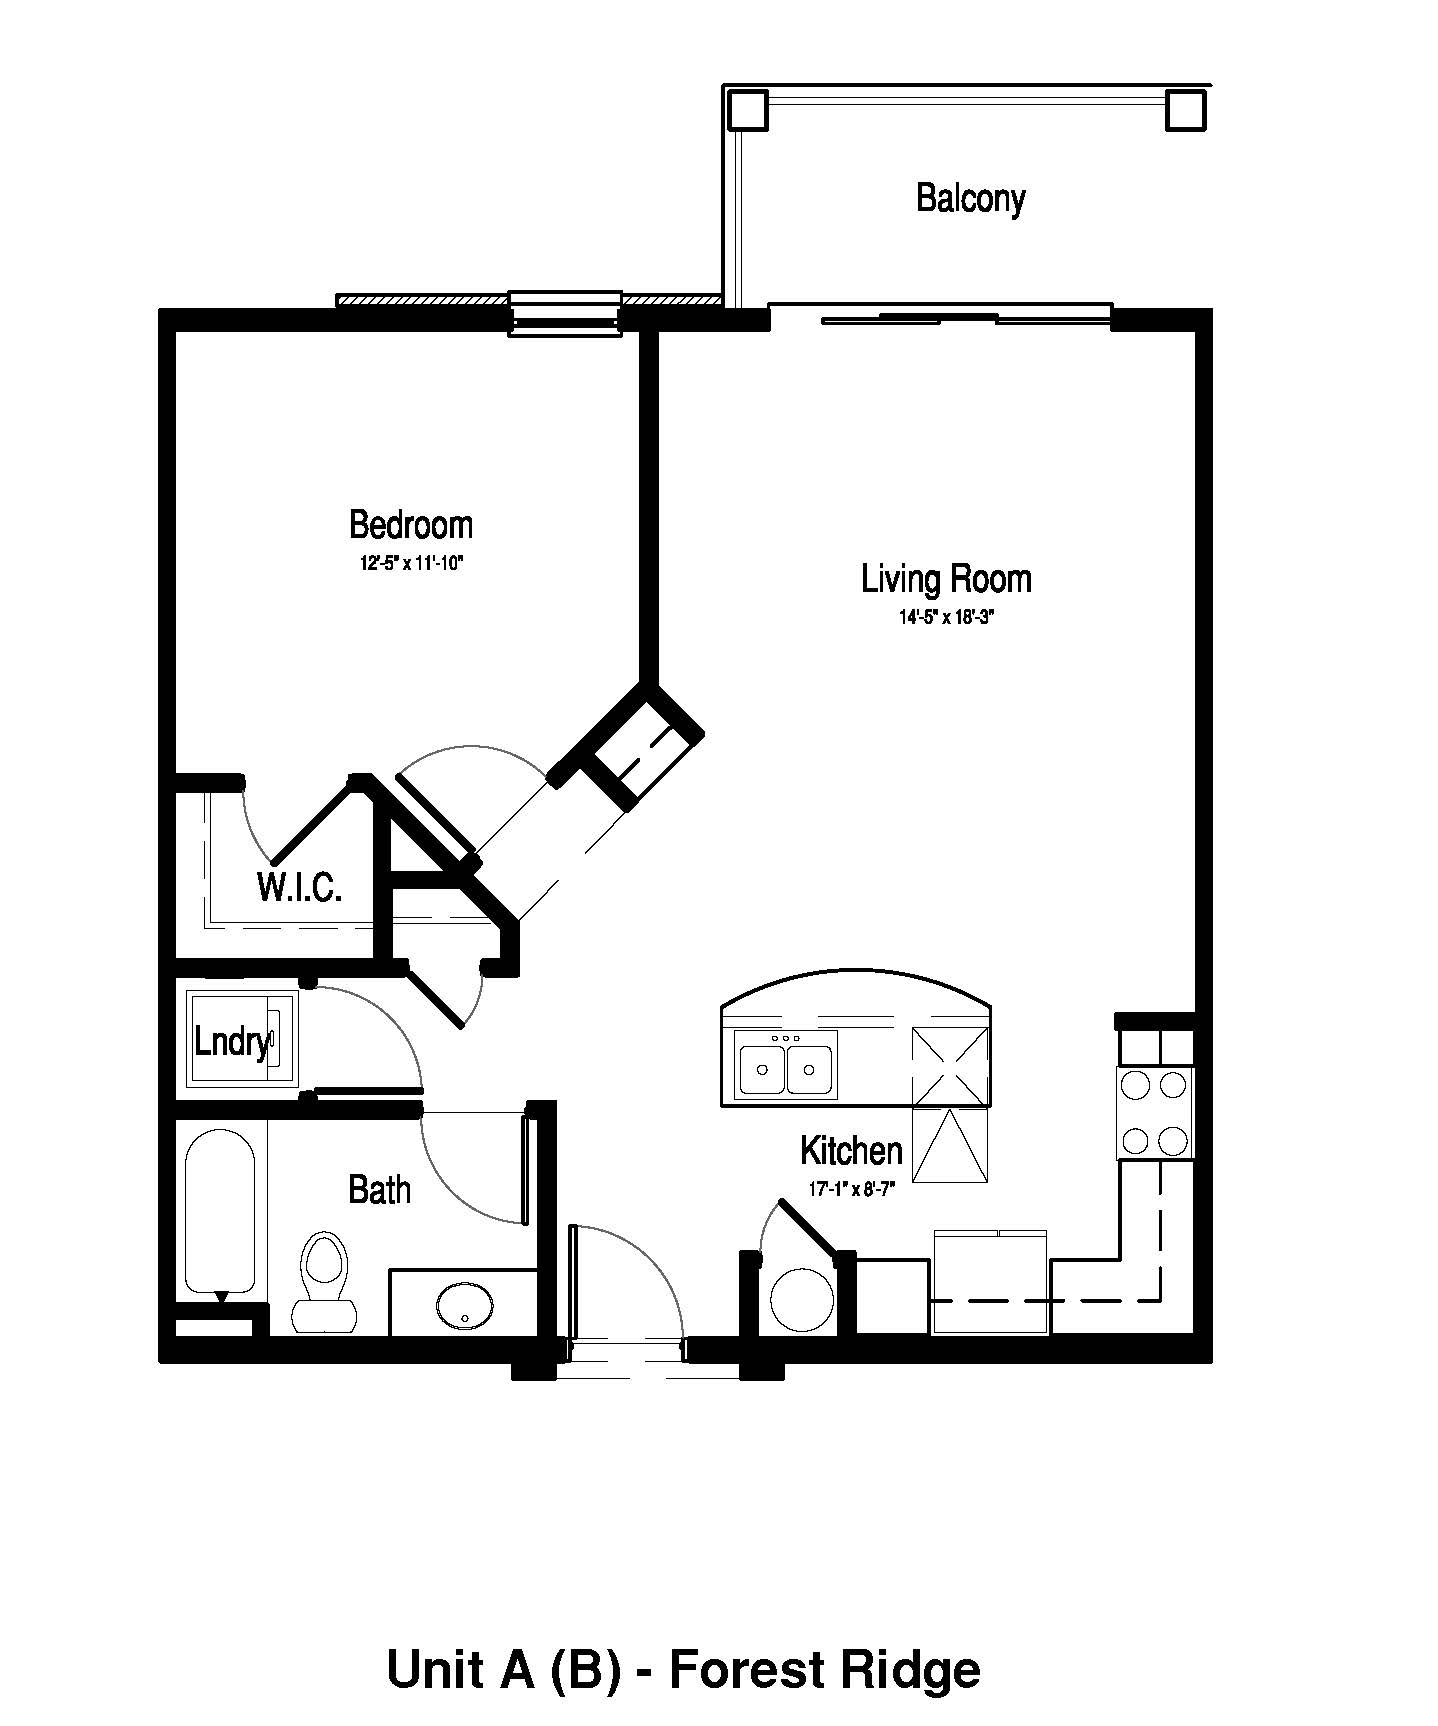 1 Bedroom, 1 Bath - 804 Sq. Ft. - Forest Ridge Expansion